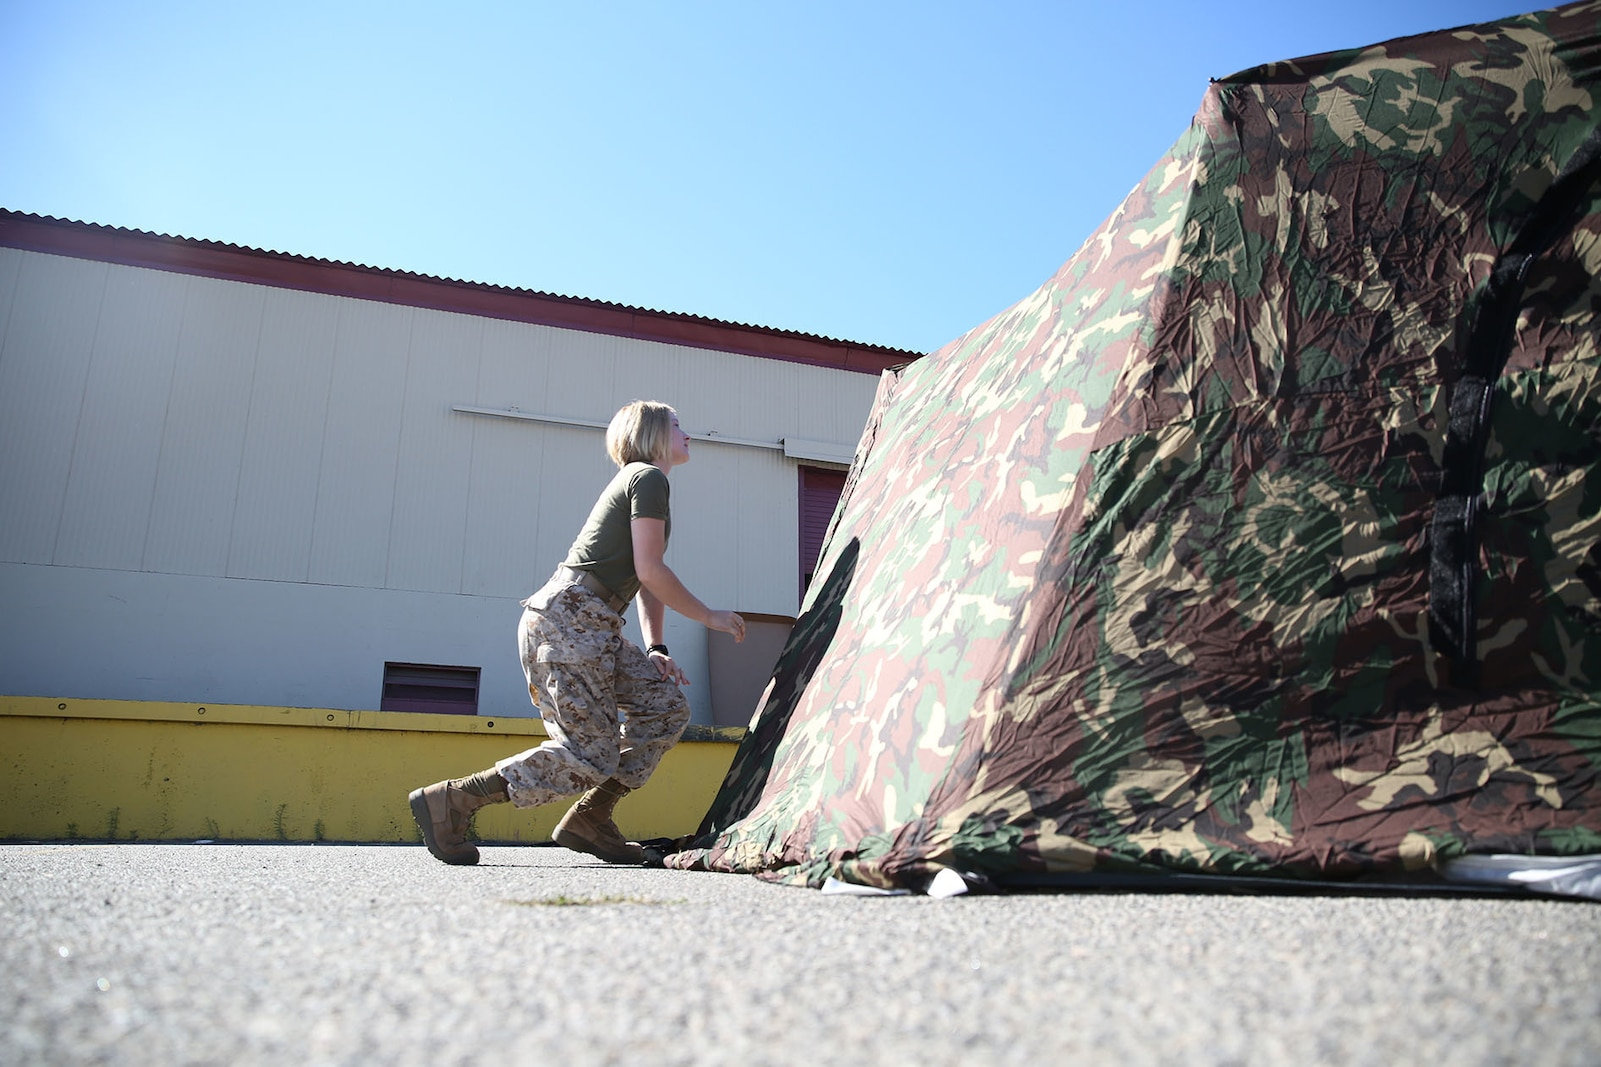 Private Sarah Trull, a fiscal clerk with Marine Air Group 39, puts together an Arctic shelter Aug. 29, 2014, aboard Camp Pendleton, California. The system is an ultra-lightweight, rapidly deployable shelter that offers military forces the necessary infrastructure to operate in austere cold-weather locations. The system is being used for training exercises in Bridgeport, California, and is slated to be integrated into exercises early next year. (U.S. Marine Corps photo by Sgt. Laura Gauna/released)